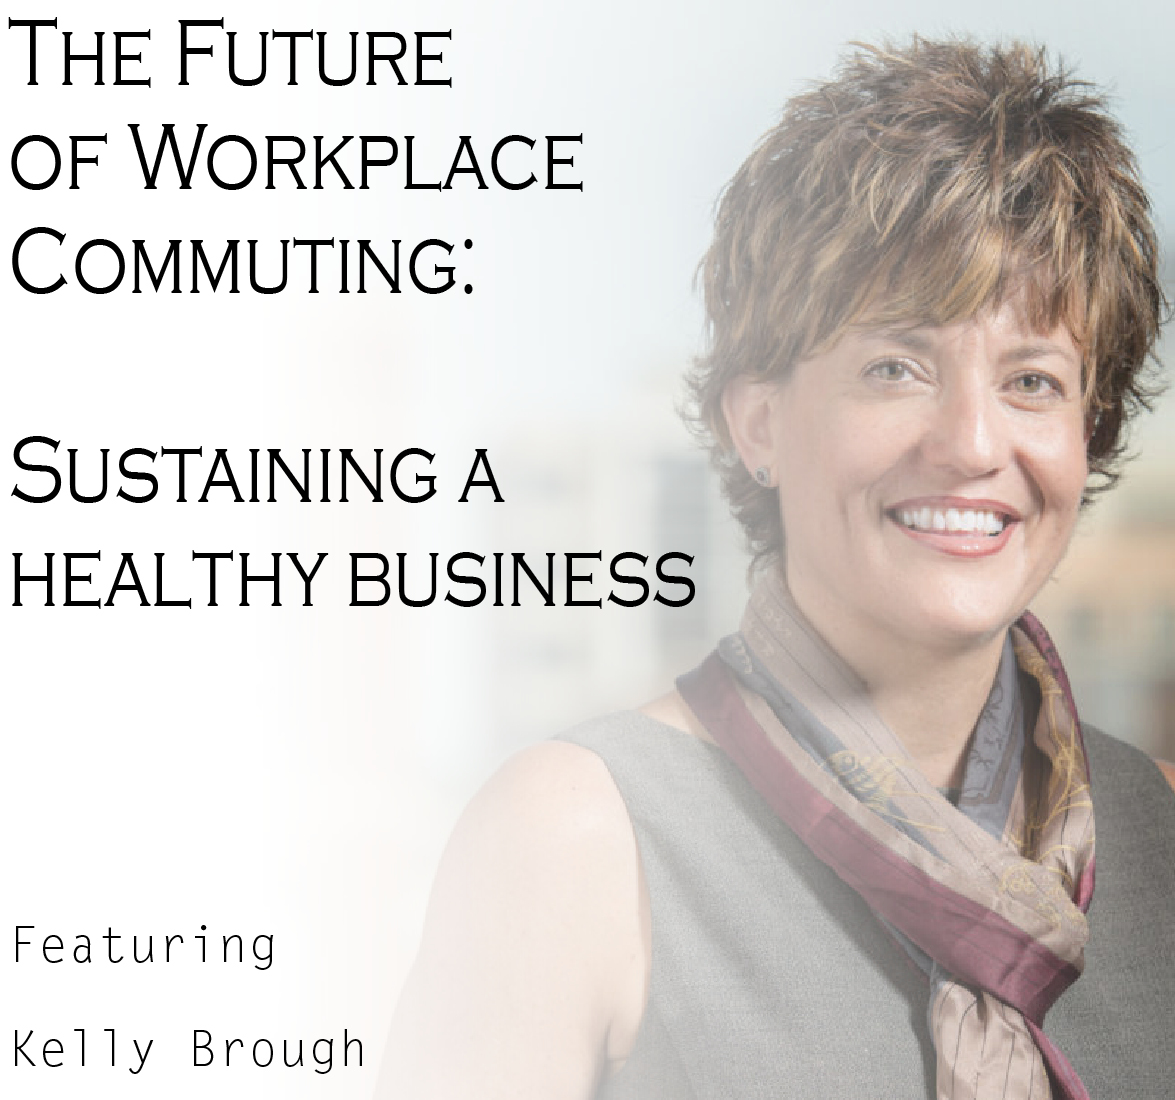 The Future of Workplace Commuting